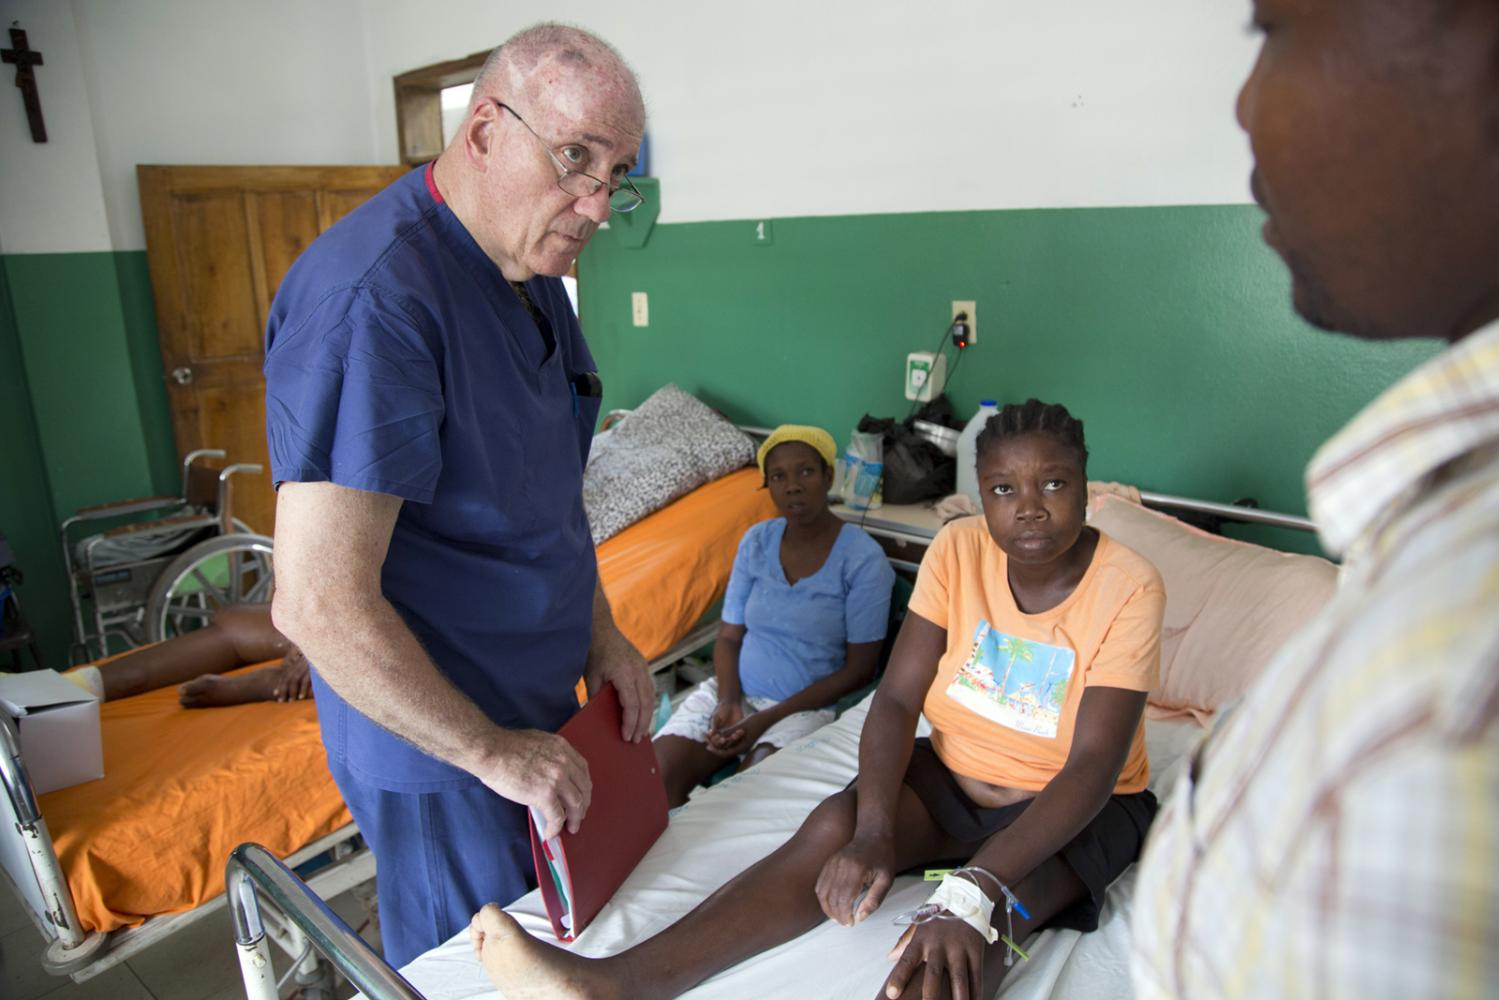 Volunteer American doctor Dave Butler learns about a patient from a translator at Hospital Sacre Coeur in Milot, Haiti.